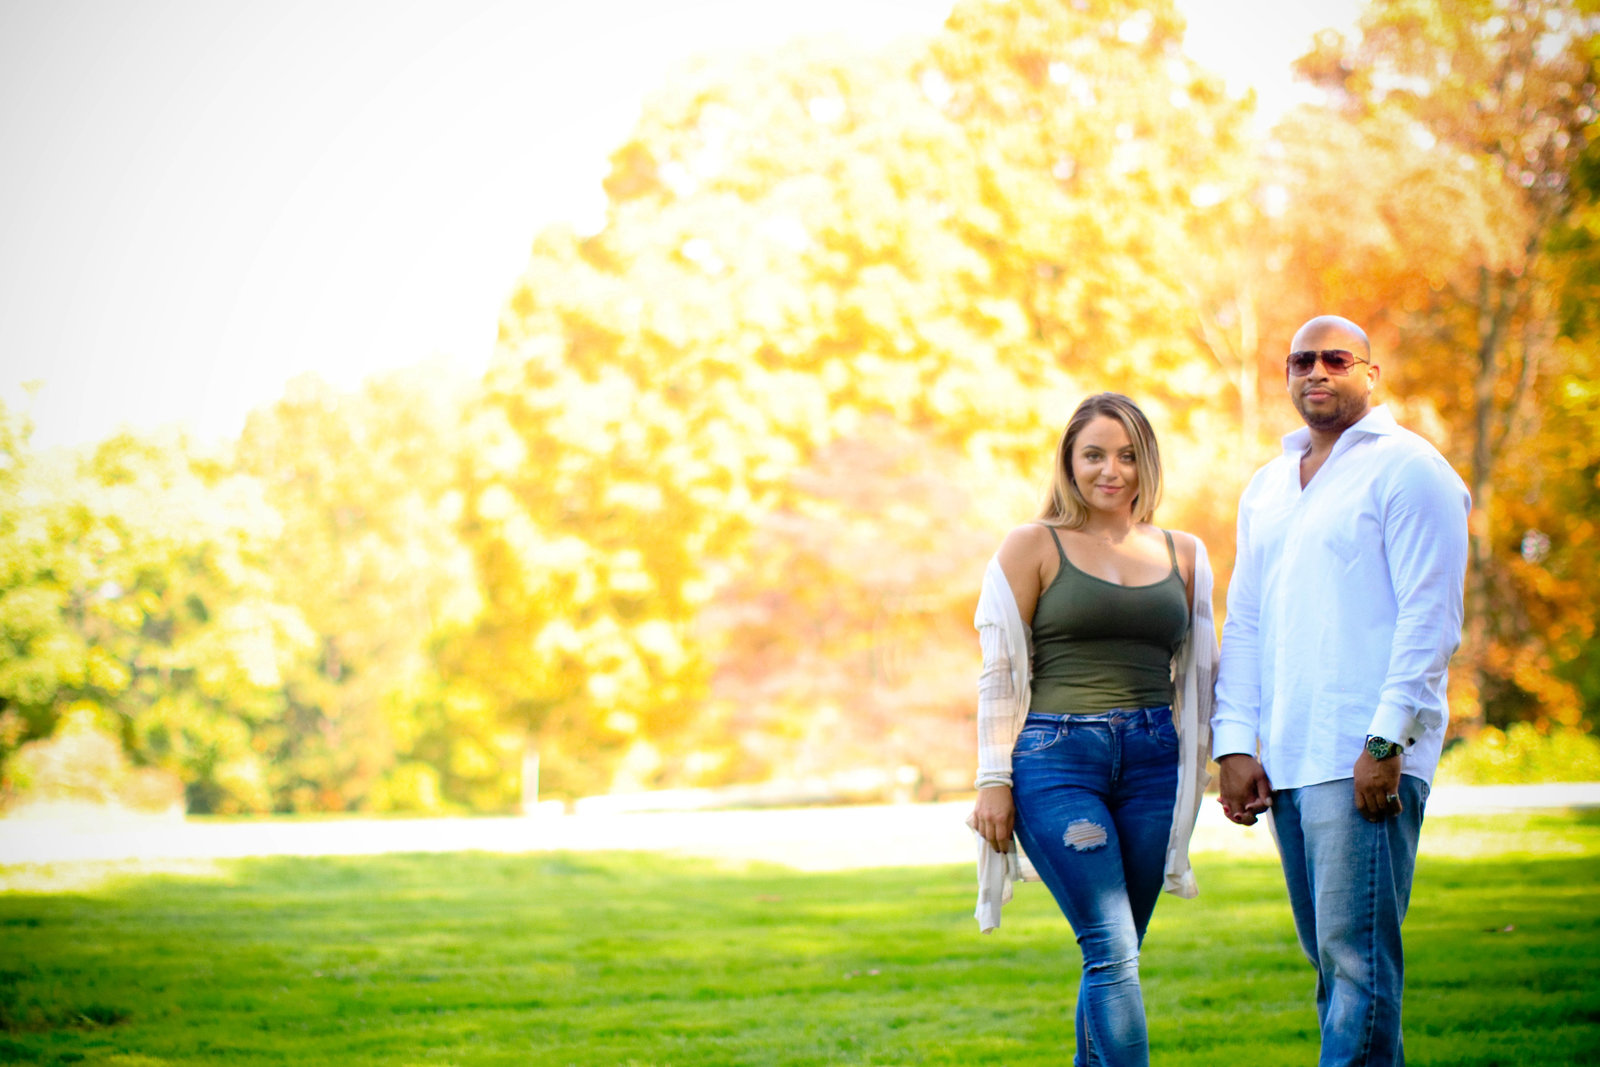 frelinghuysen-arboretum-engagement-photos-1258